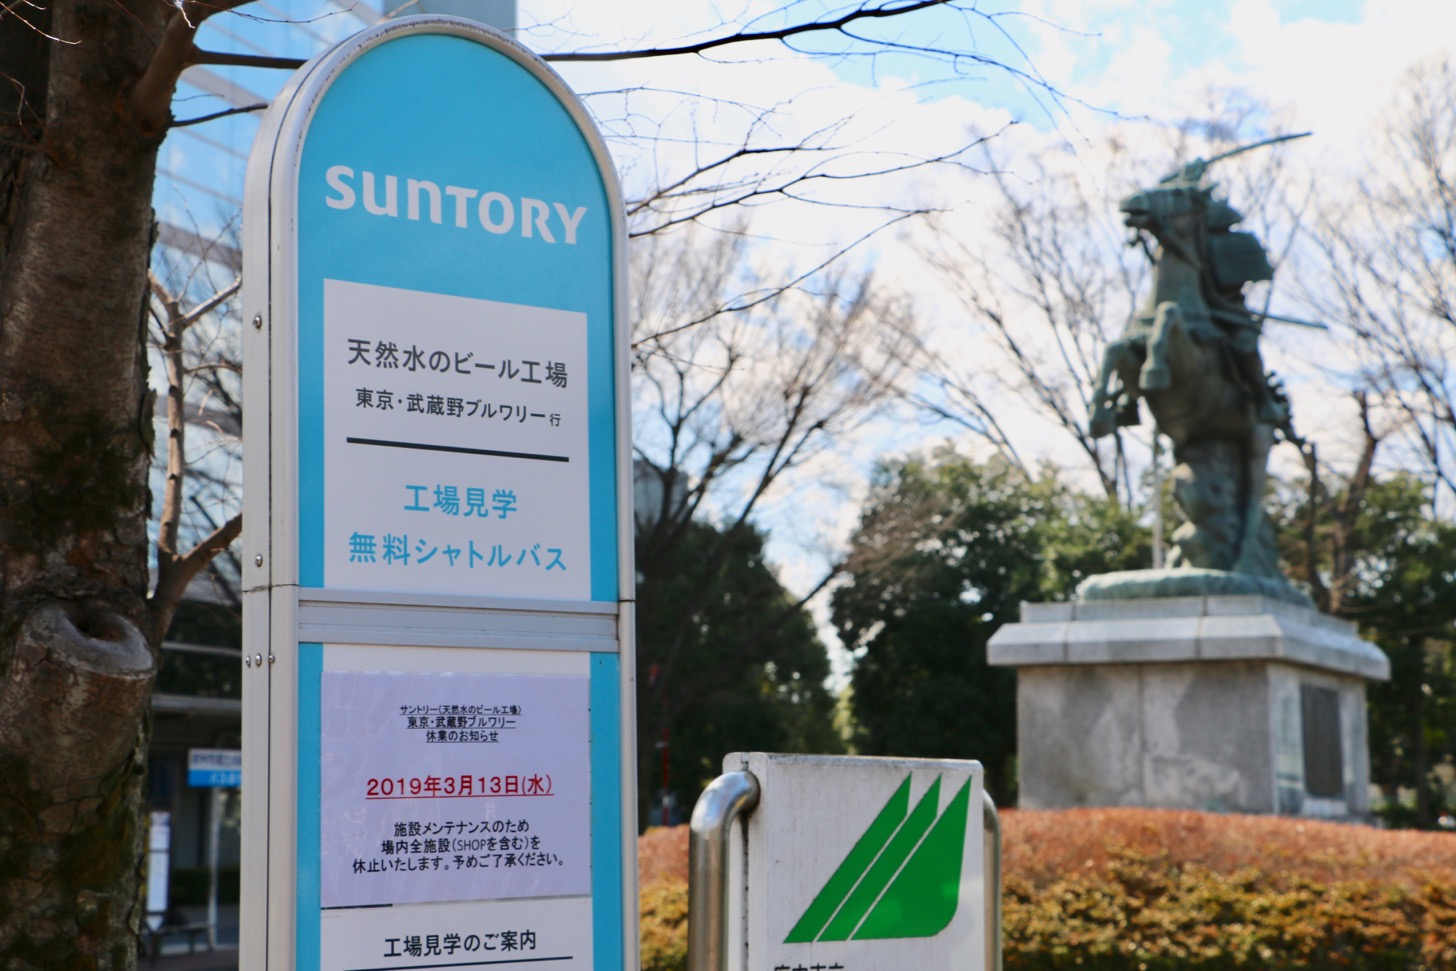 Suntory ビ ー ル beer factory of natural water 工場 Tokyo · Factory tour for Musashino Brewery Free shuttle bus stop